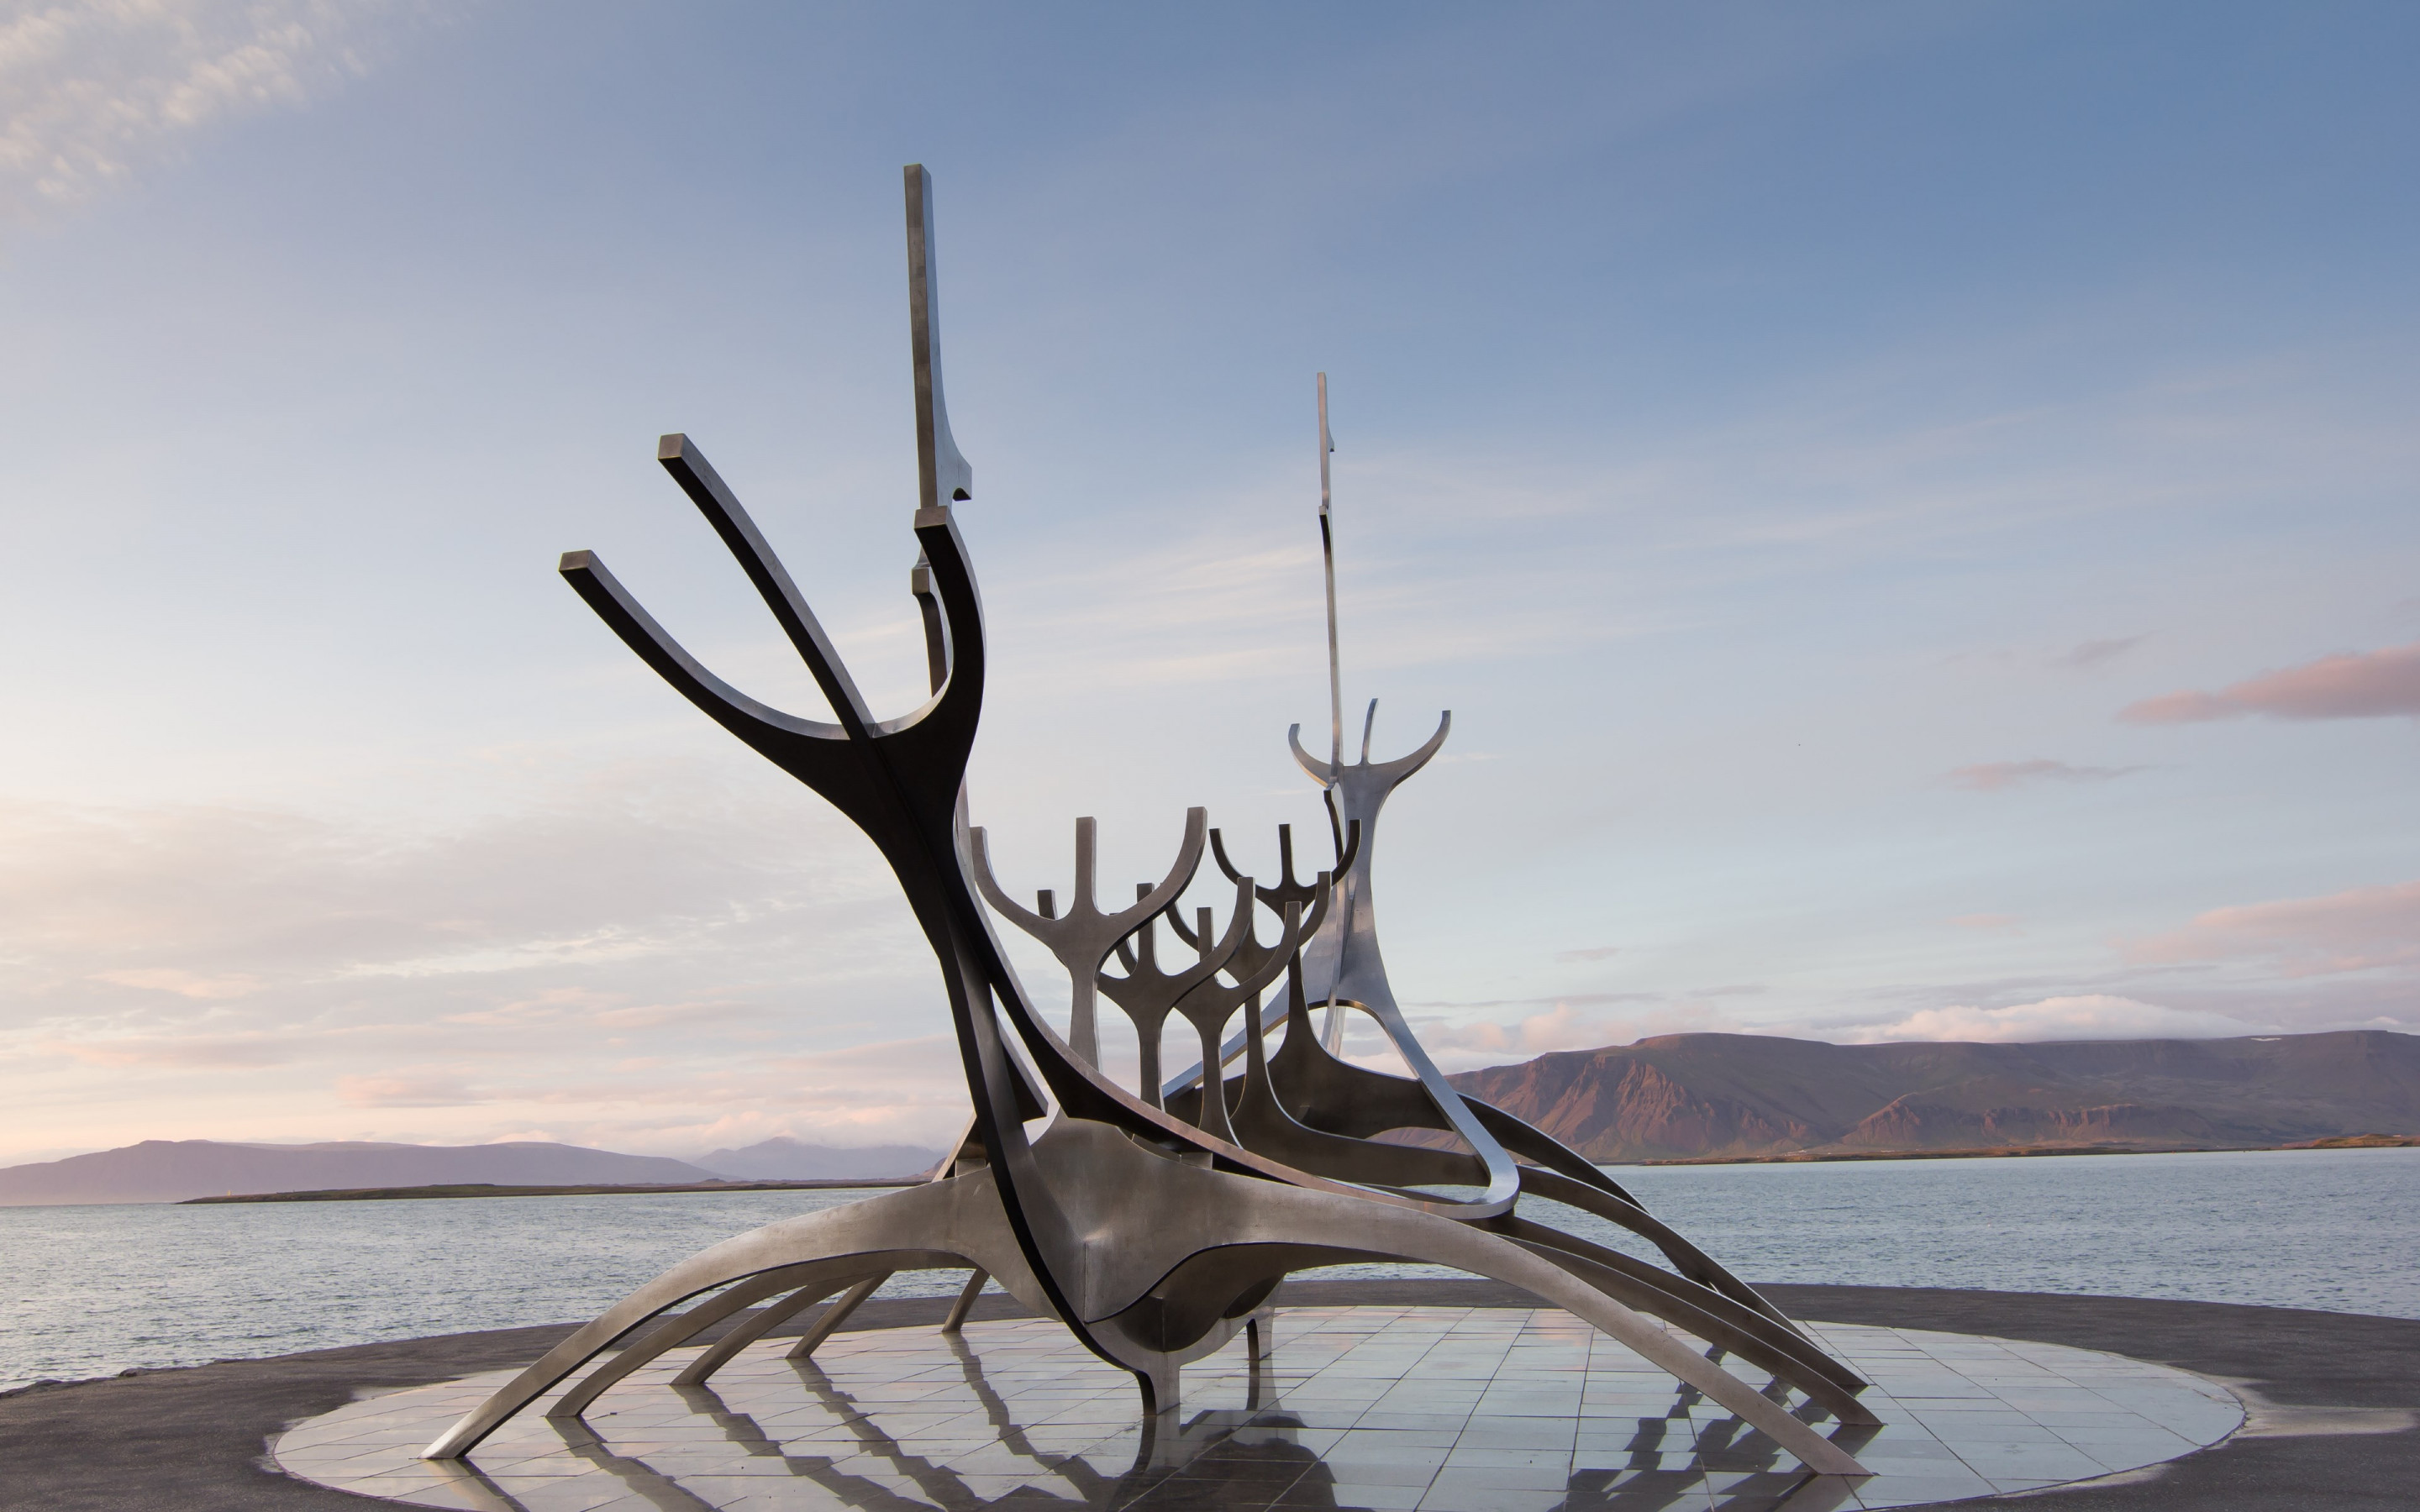 The Sun Voyager from Reykjavik, Iceland | 2880x1800 wallpaper